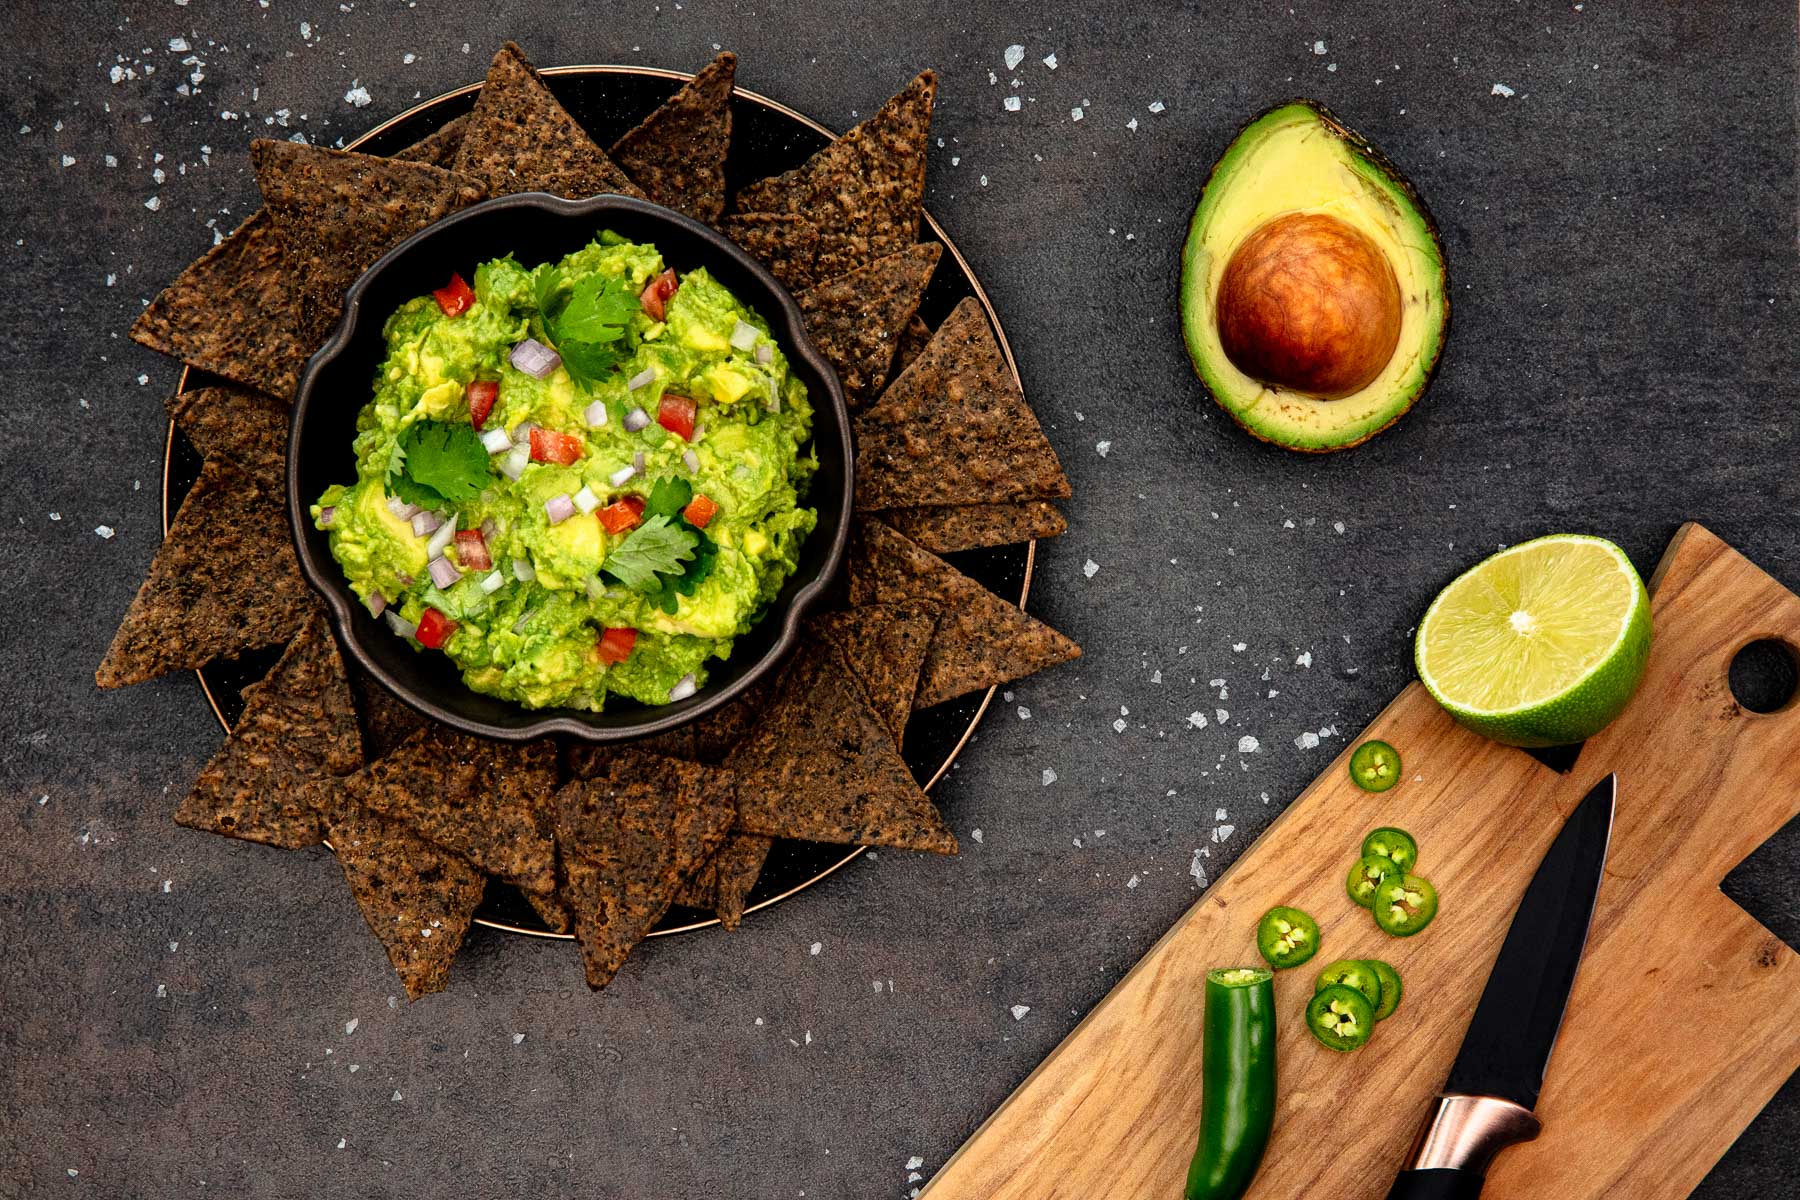 A bowl of guacamole sits amidst a bed of triangular dark brown hemp chips alongside a half an avocado, half a lime and a jalapeno.